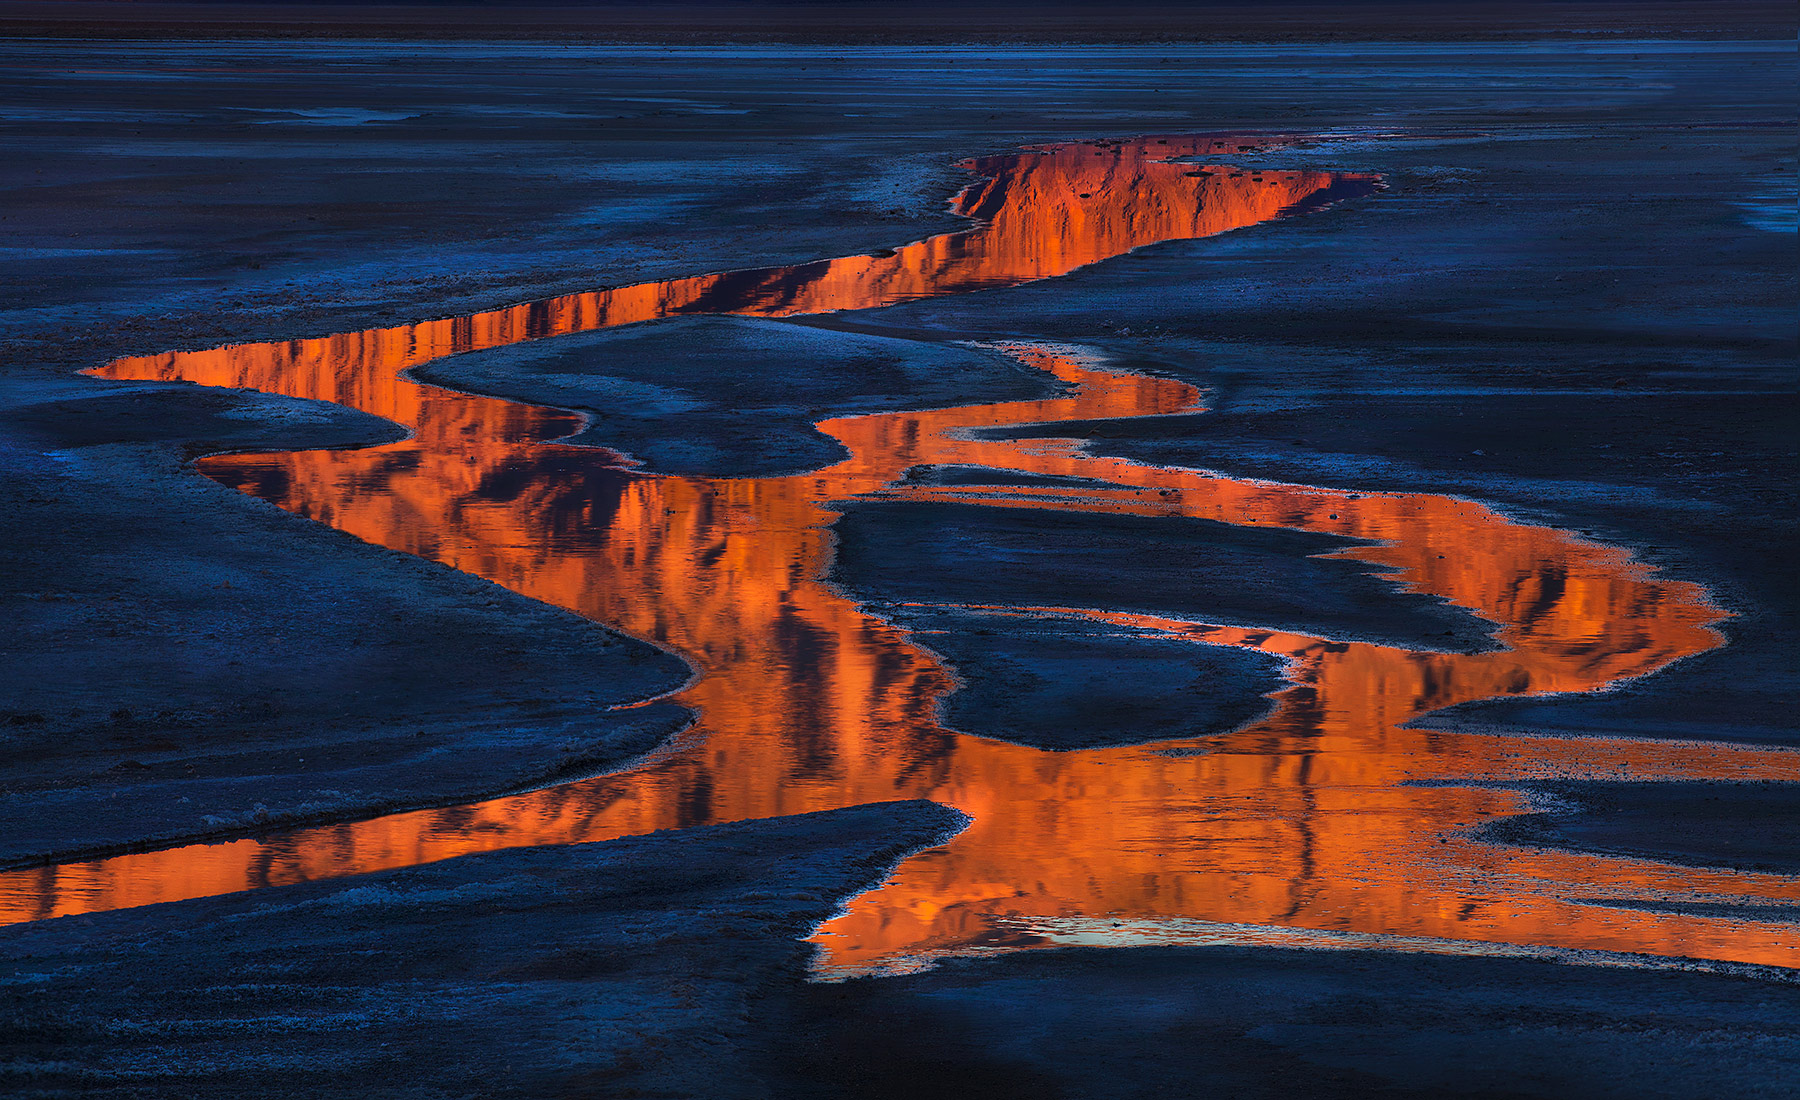 Reflected sunrise light in a winding stream located on the floor of Death Valley, California.